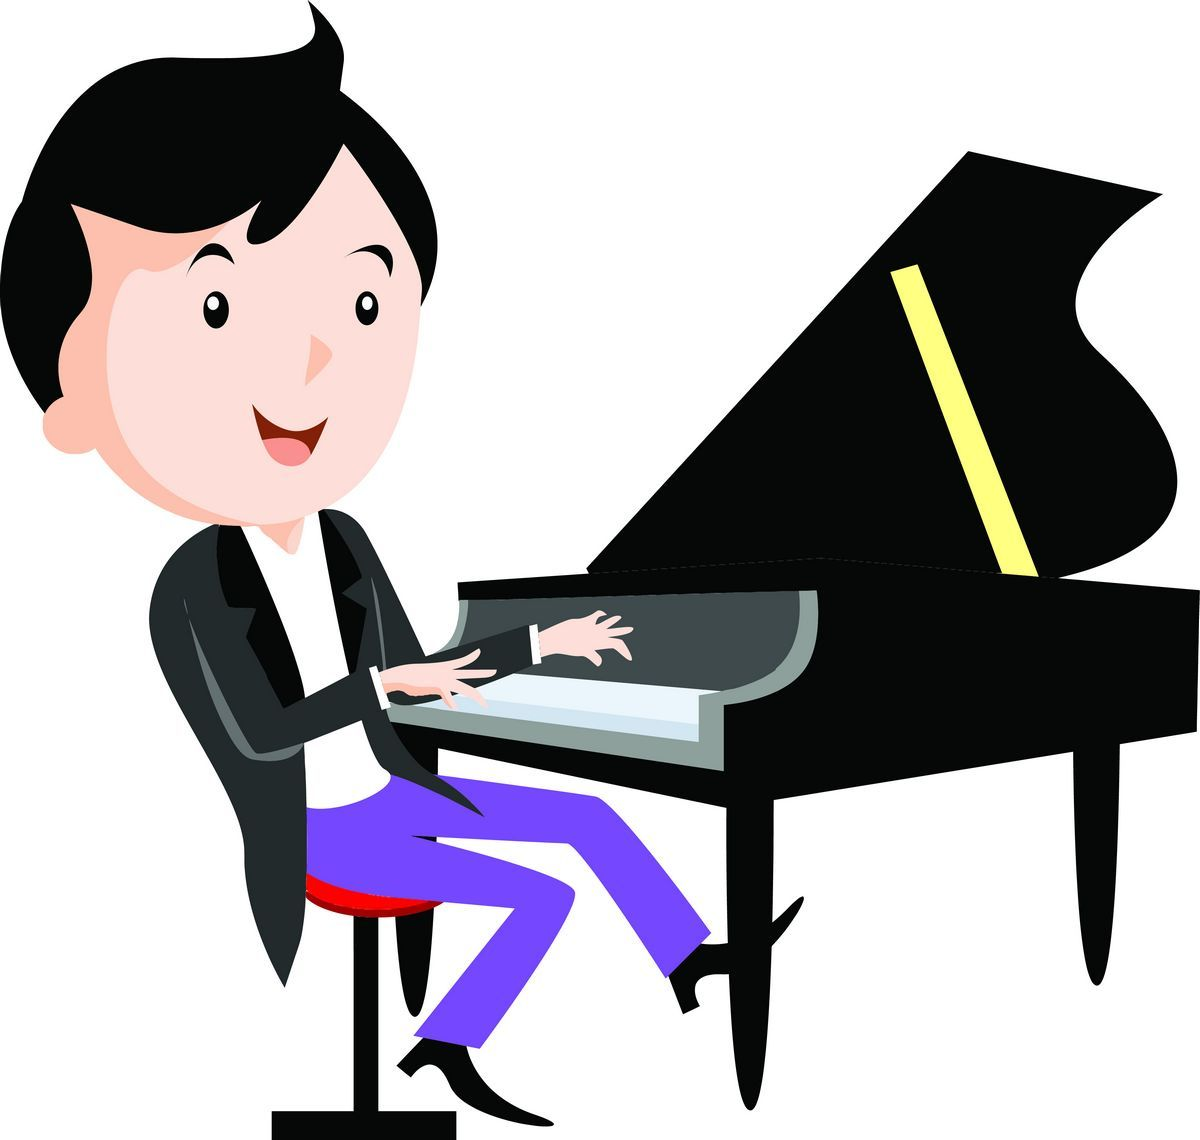 Clipart piano piano performance. Children playing musical instruments